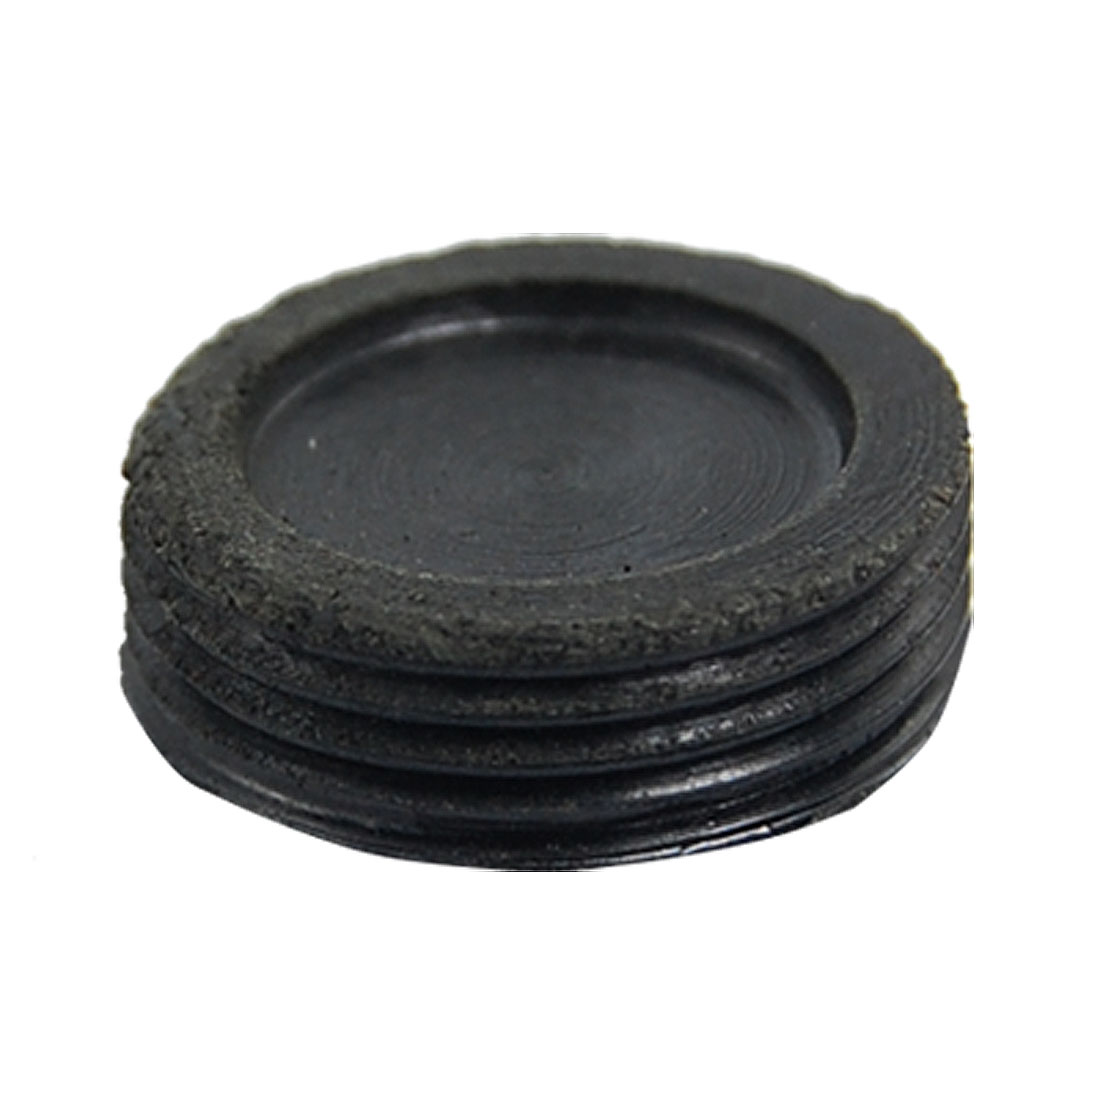 Motor 15.5mm Diameter Carbon Brush Holder Rear Cap 20 Pcs